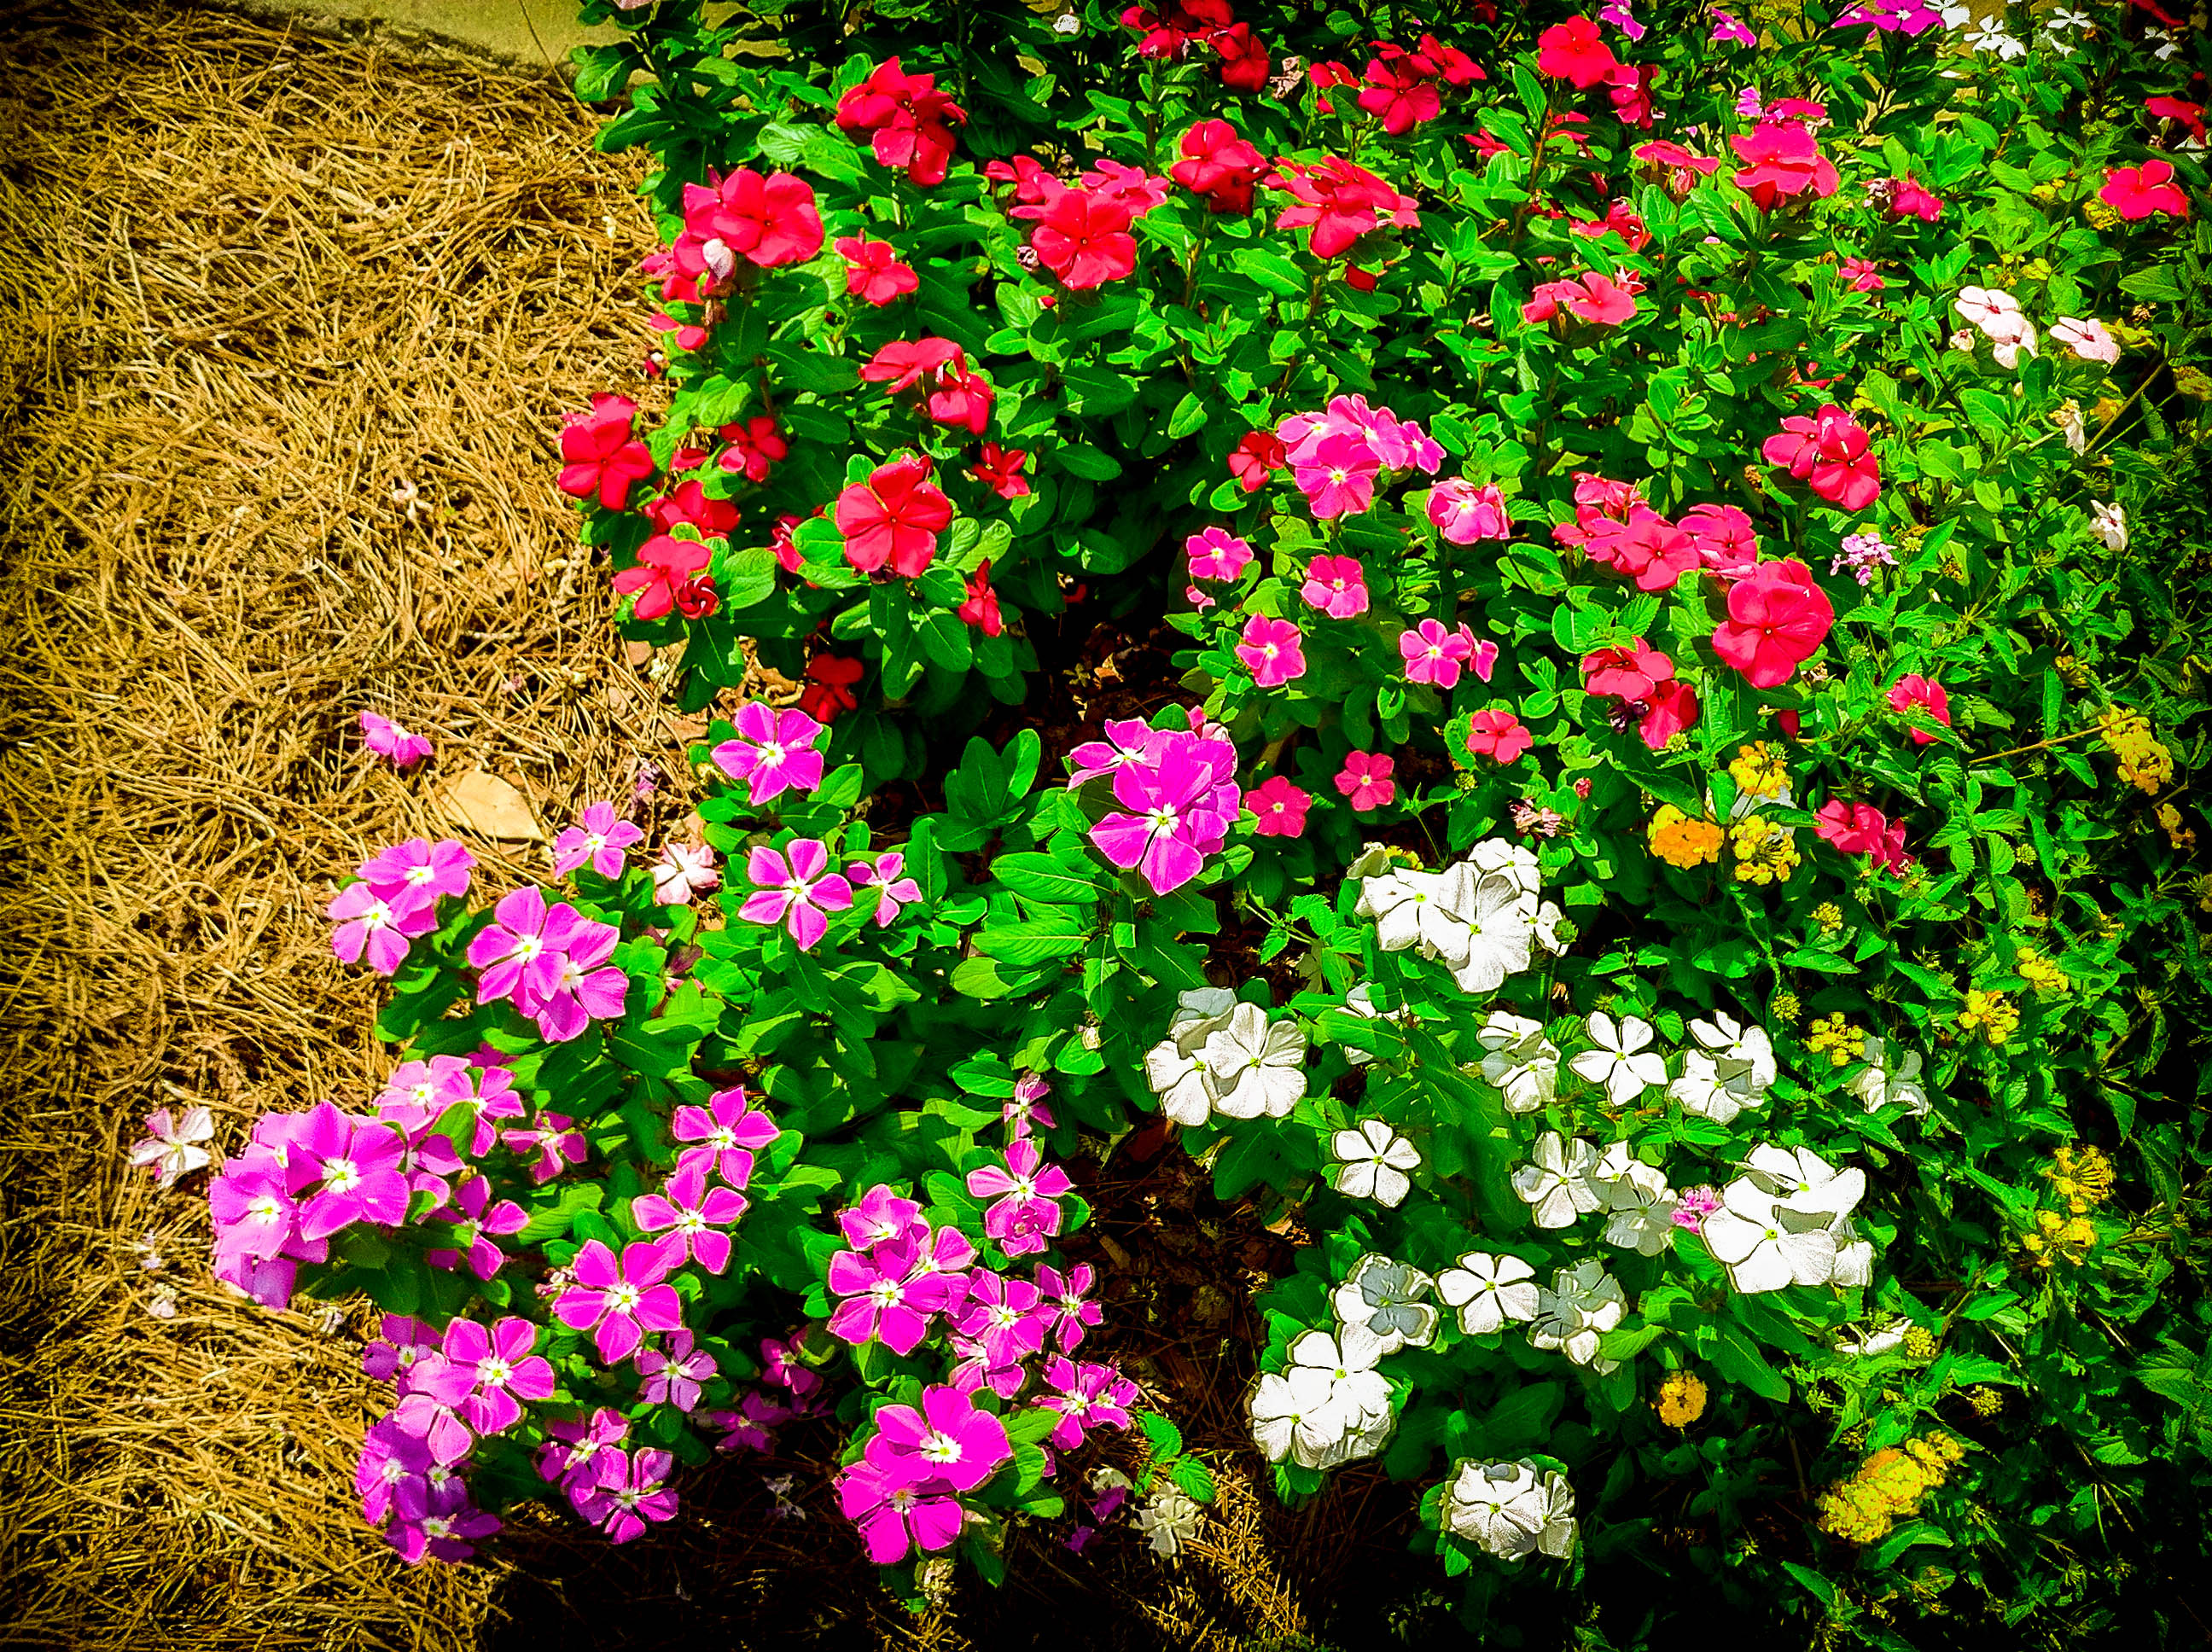 lr4-retouched-colorful-flowers-img01